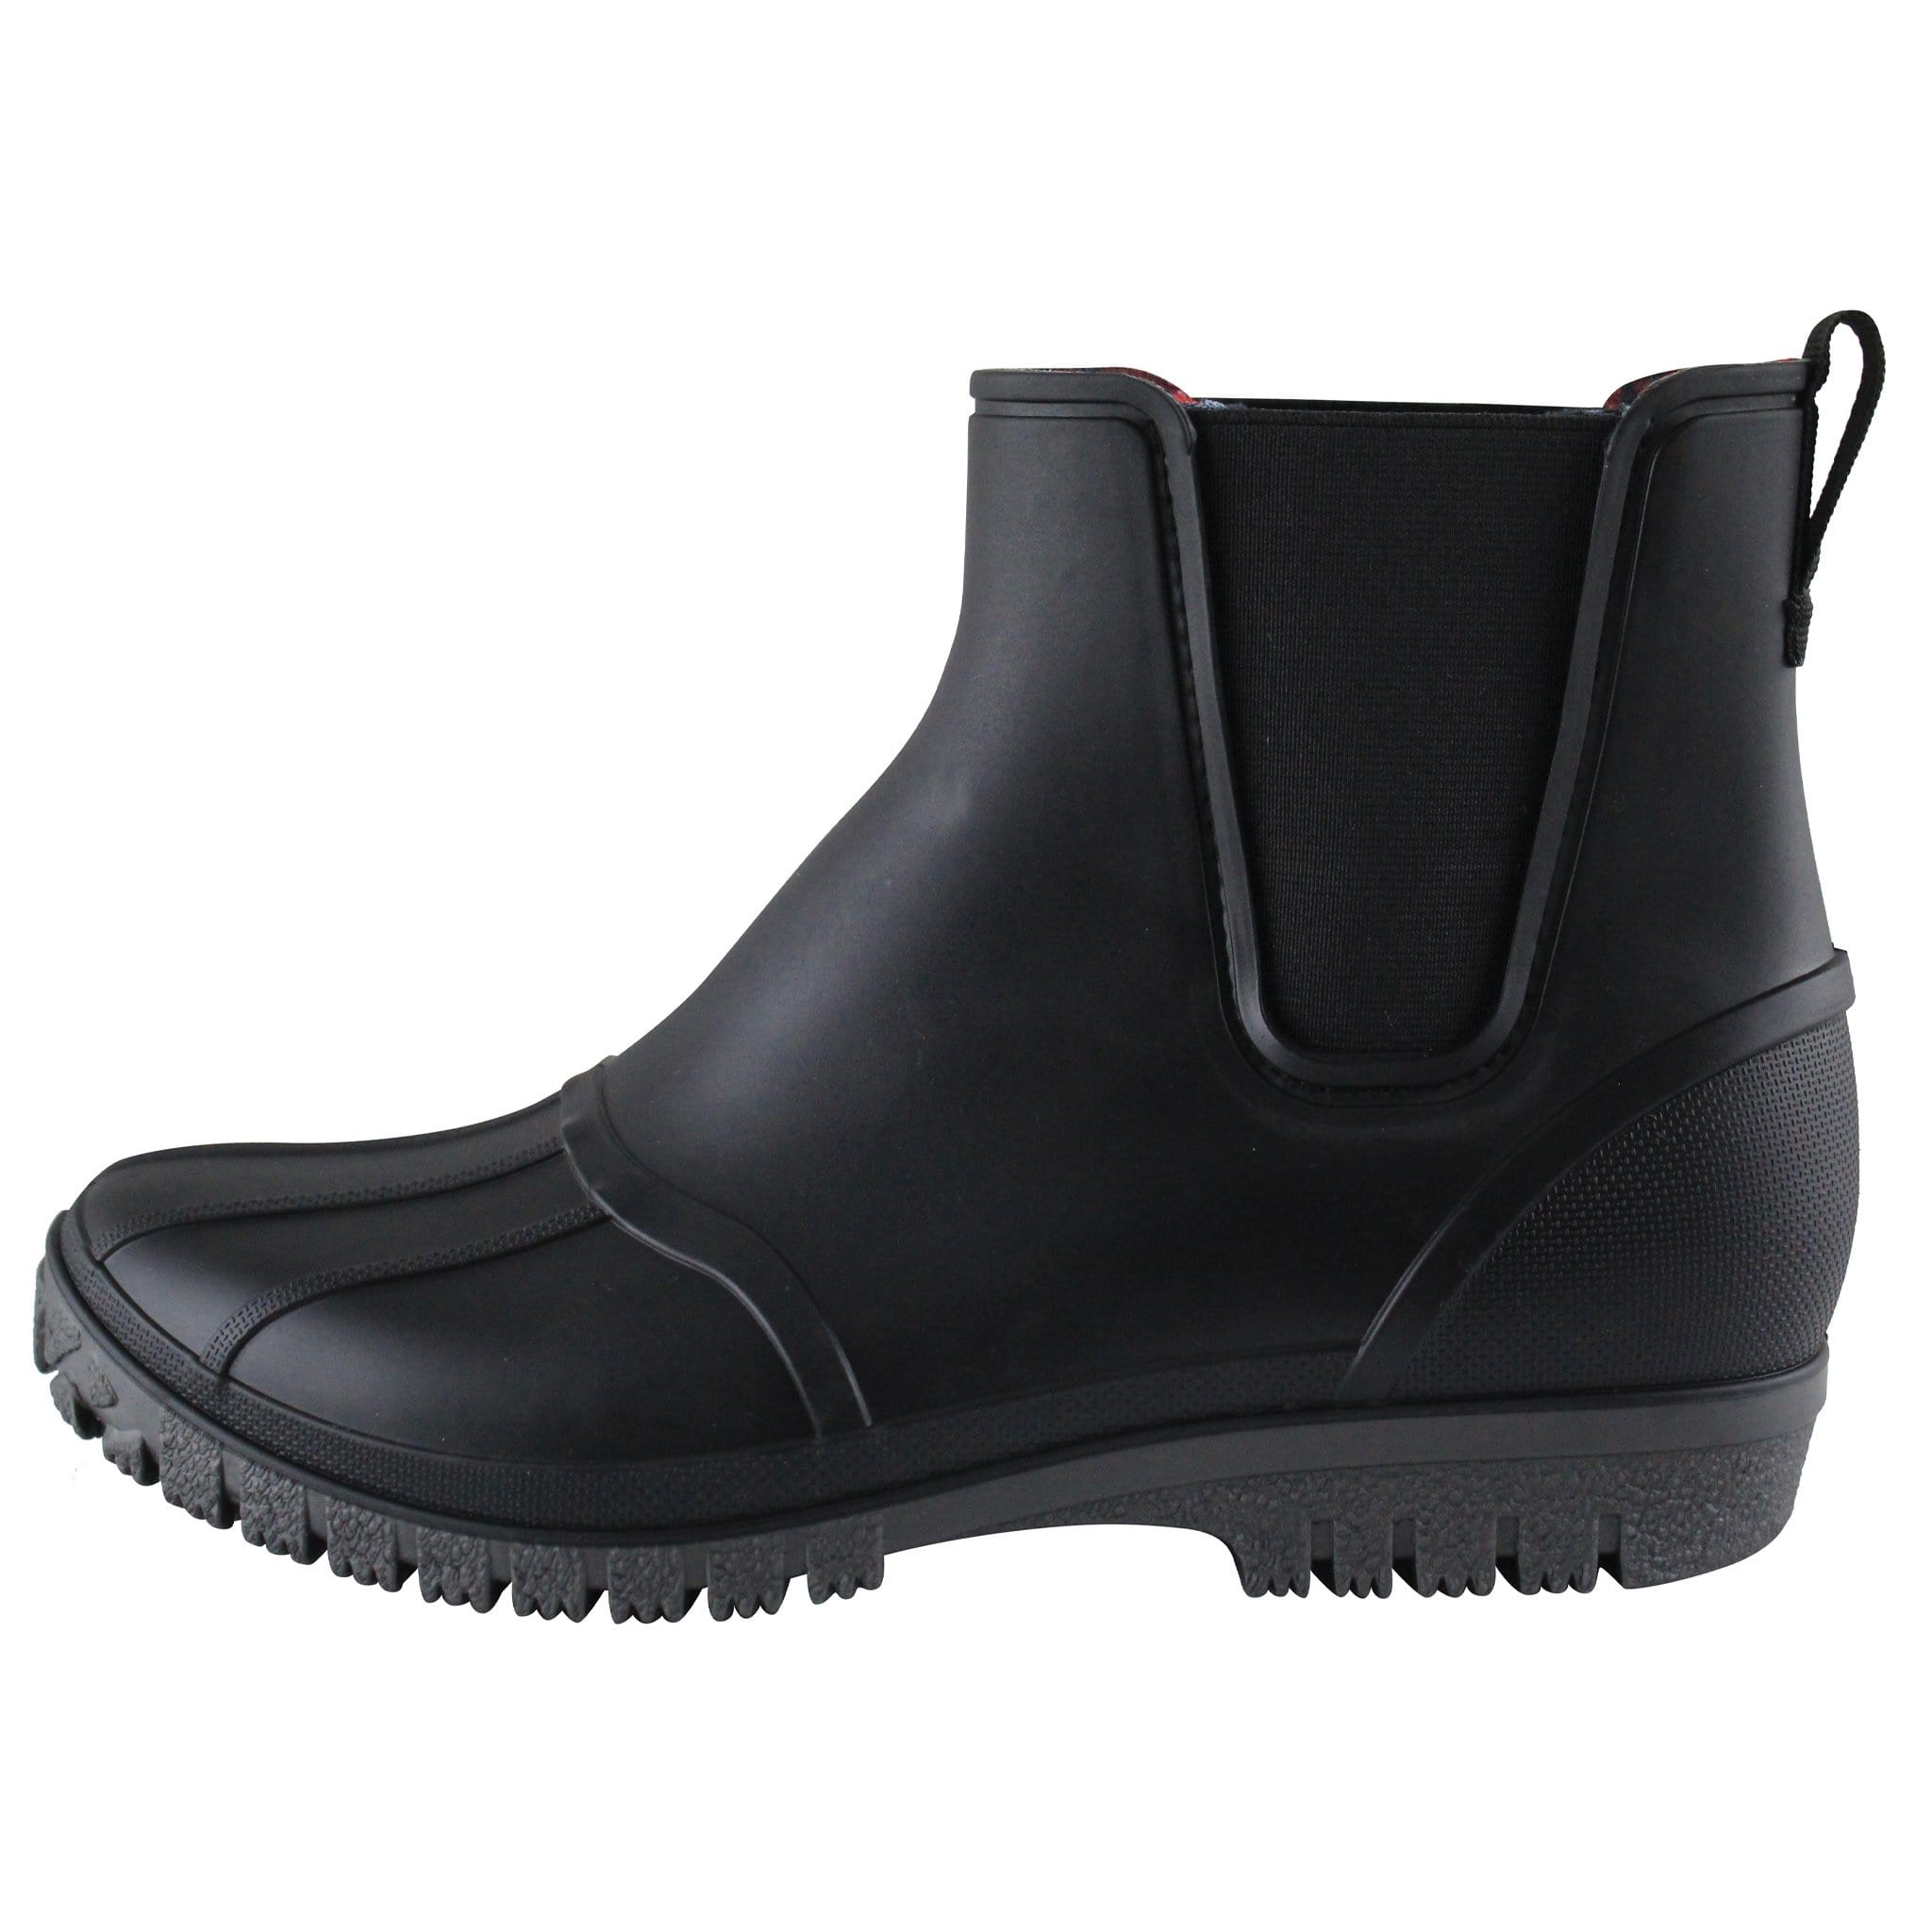 Woof Wear Wester Boots Black Side View WF0031.